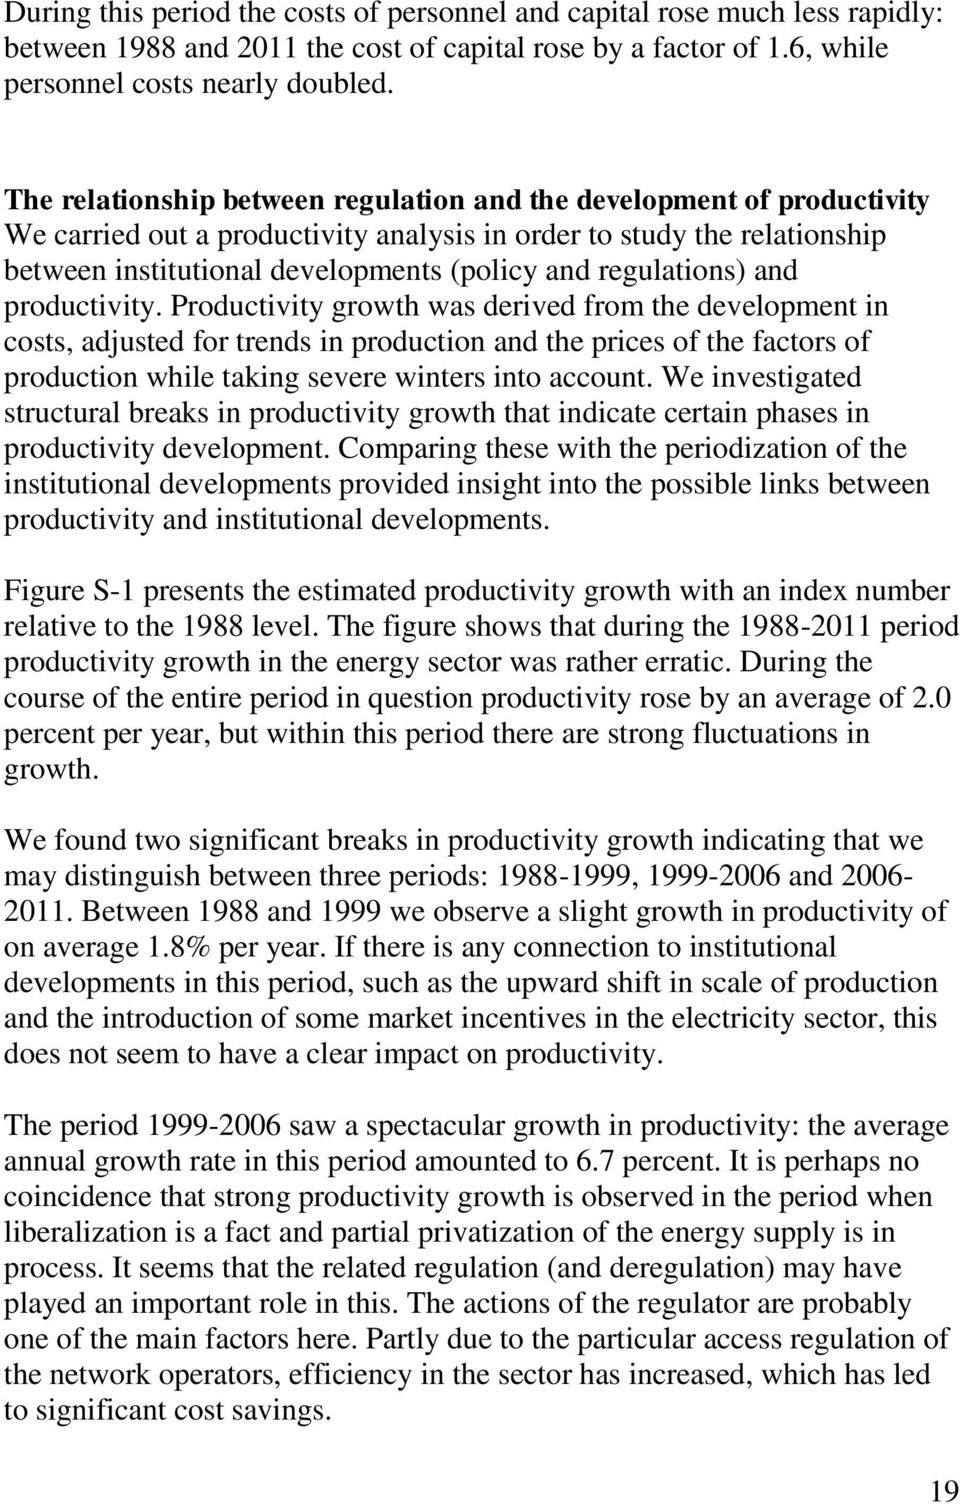 regulations) and productivity.